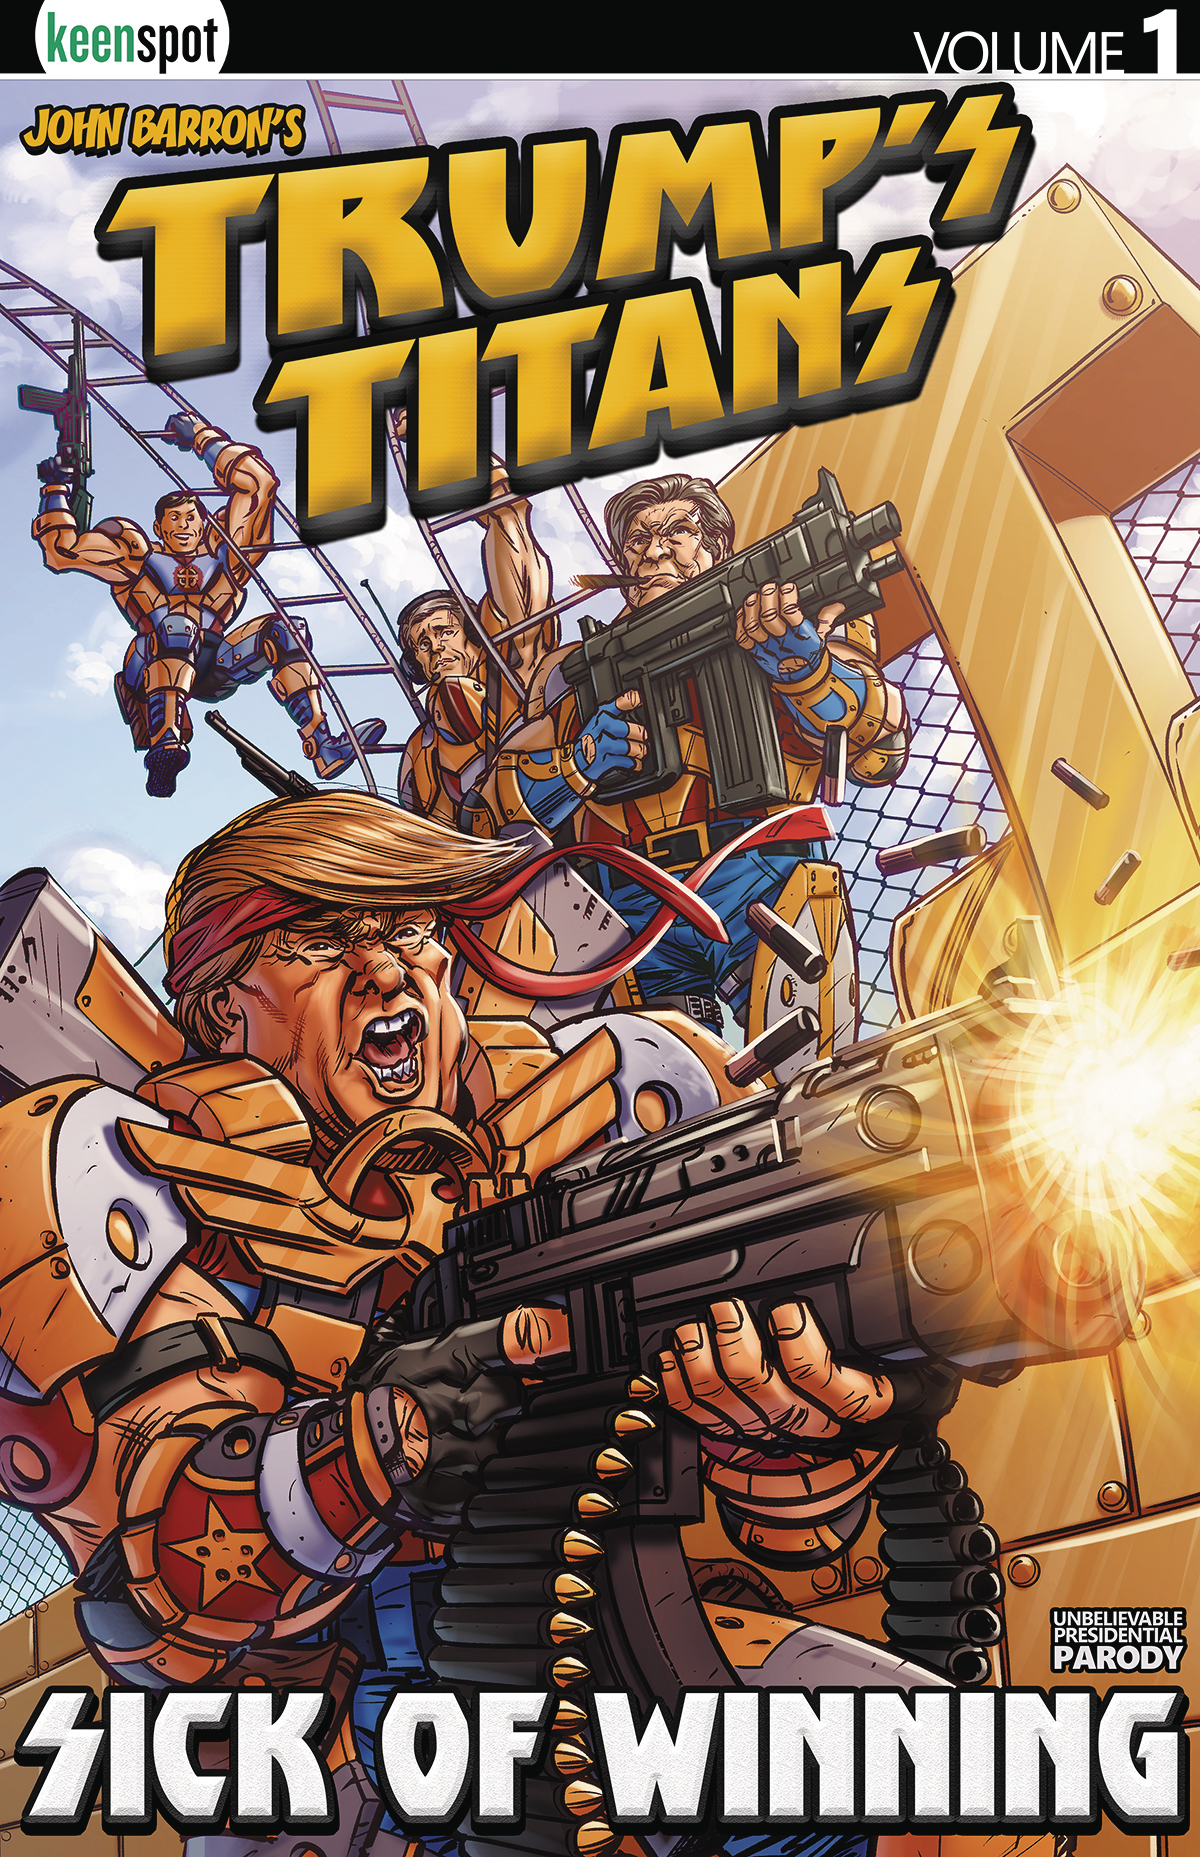 TRUMPS TITANS TP VOL 01 SICK OF WINNING (JAN181757) (MR)